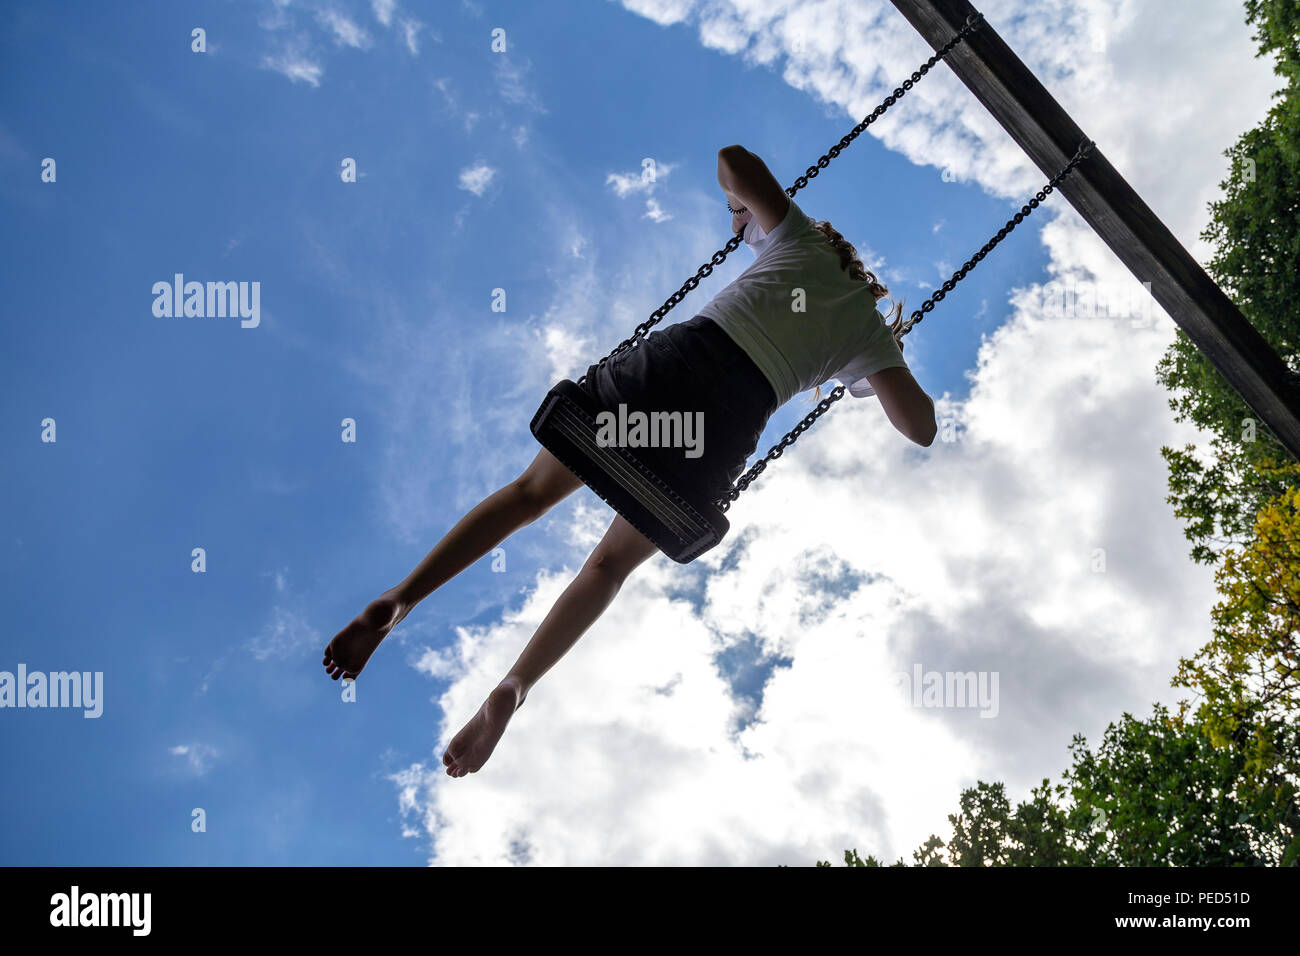 girl on a swing moves back and forth or from side to side while suspended or on an axis,young lady on swing,sway, oscillate, move back and forth, - Stock Image